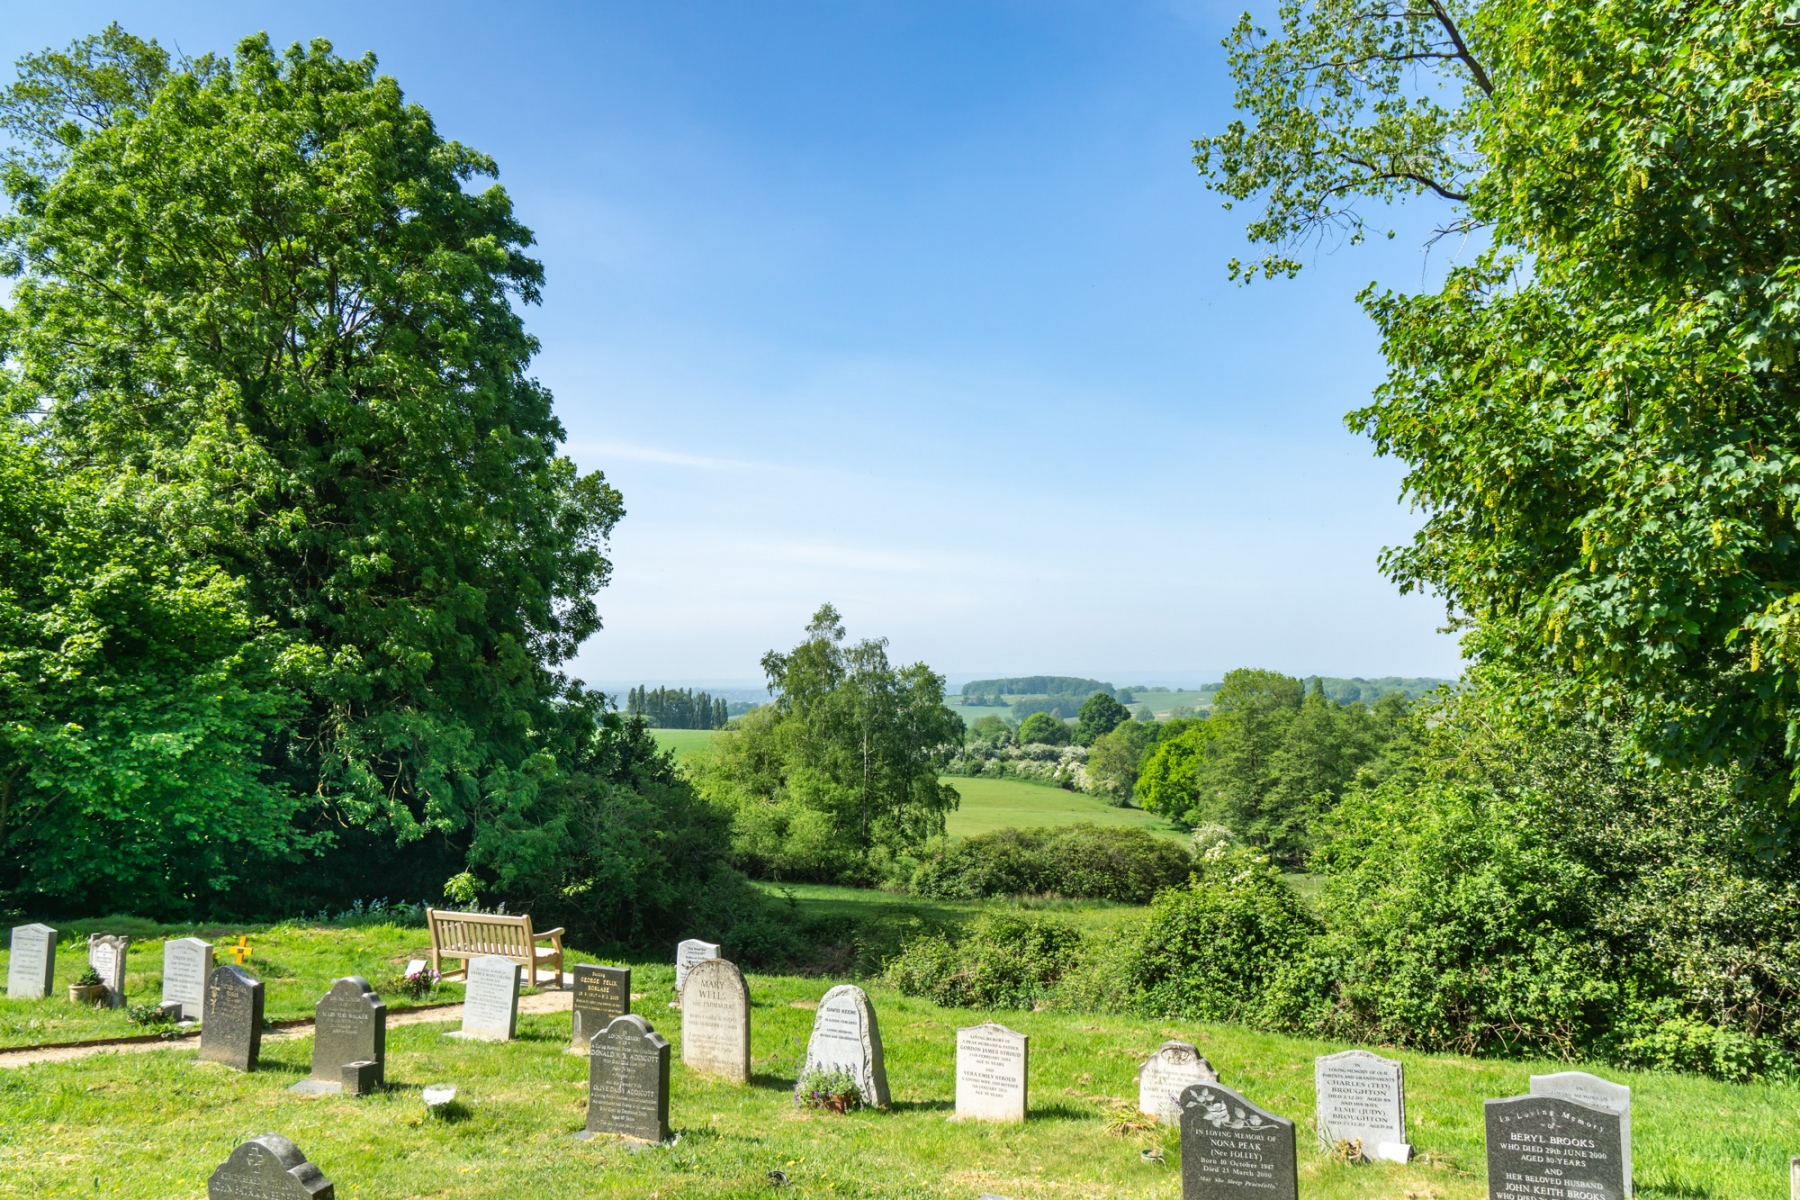 A rolling countryside view from the rear of the church. Gravestones and a bench can be viewed in the foreground.